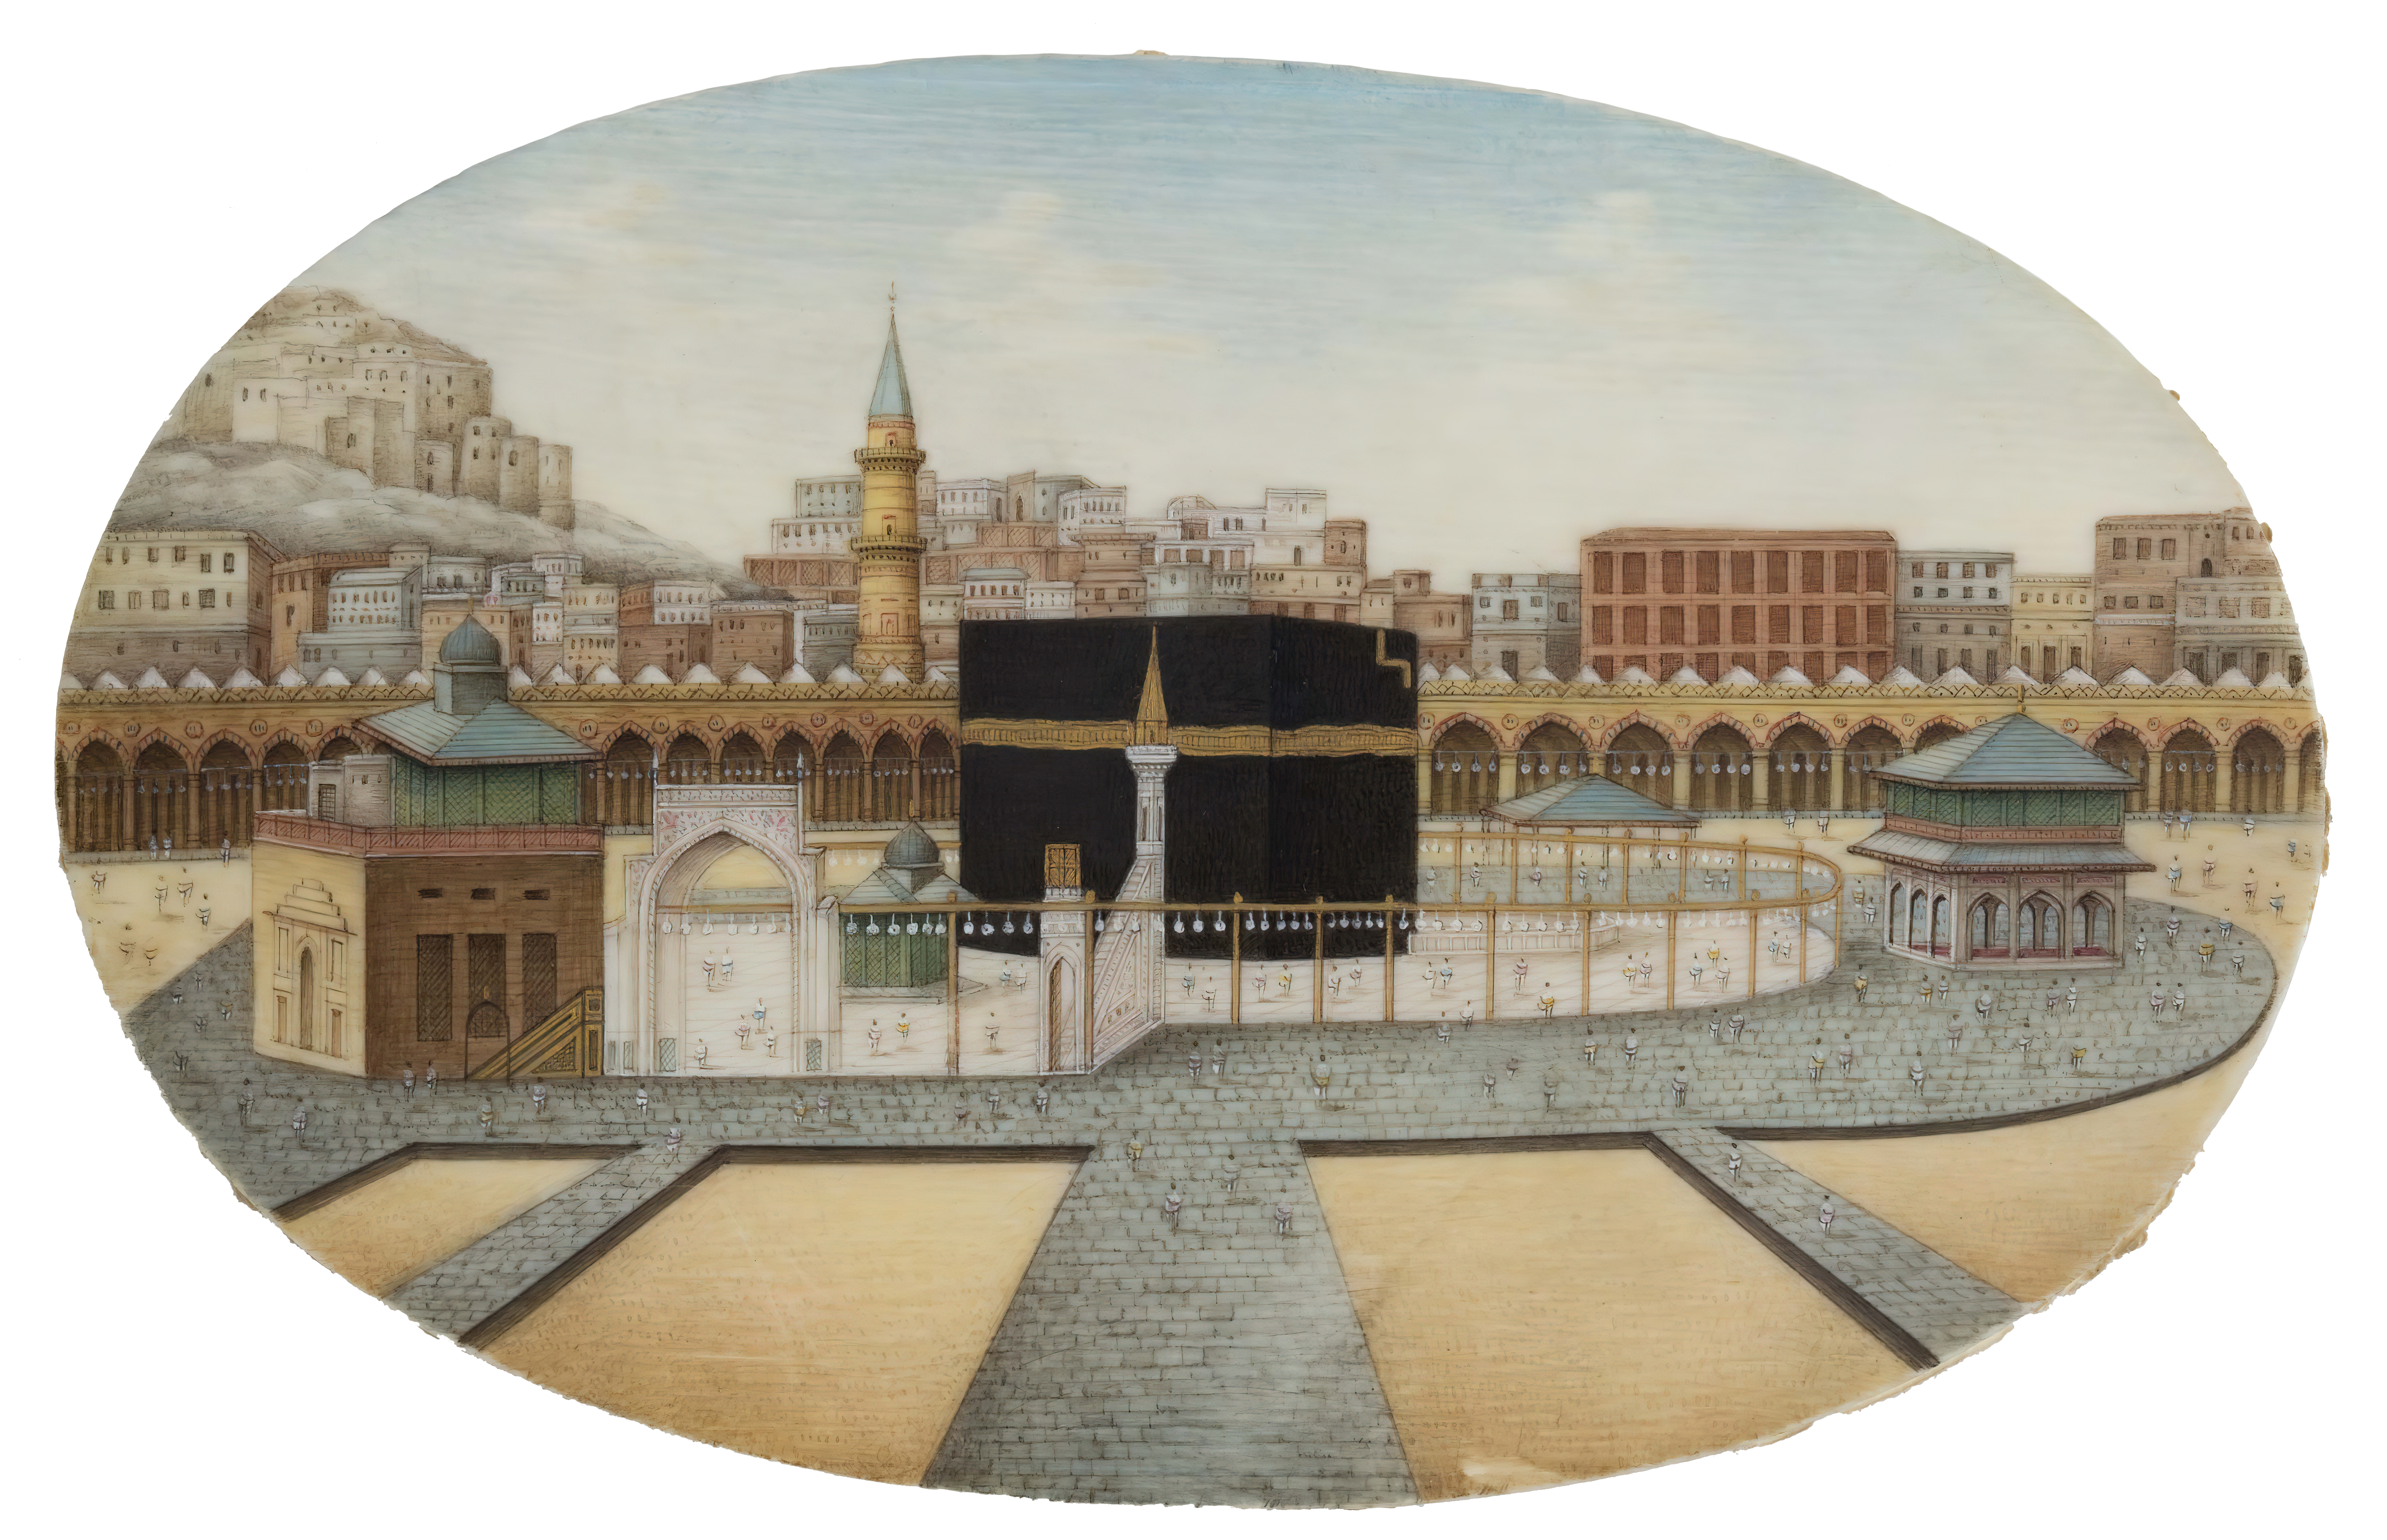 Miniature view on ivory of the sanctuary at Mecca